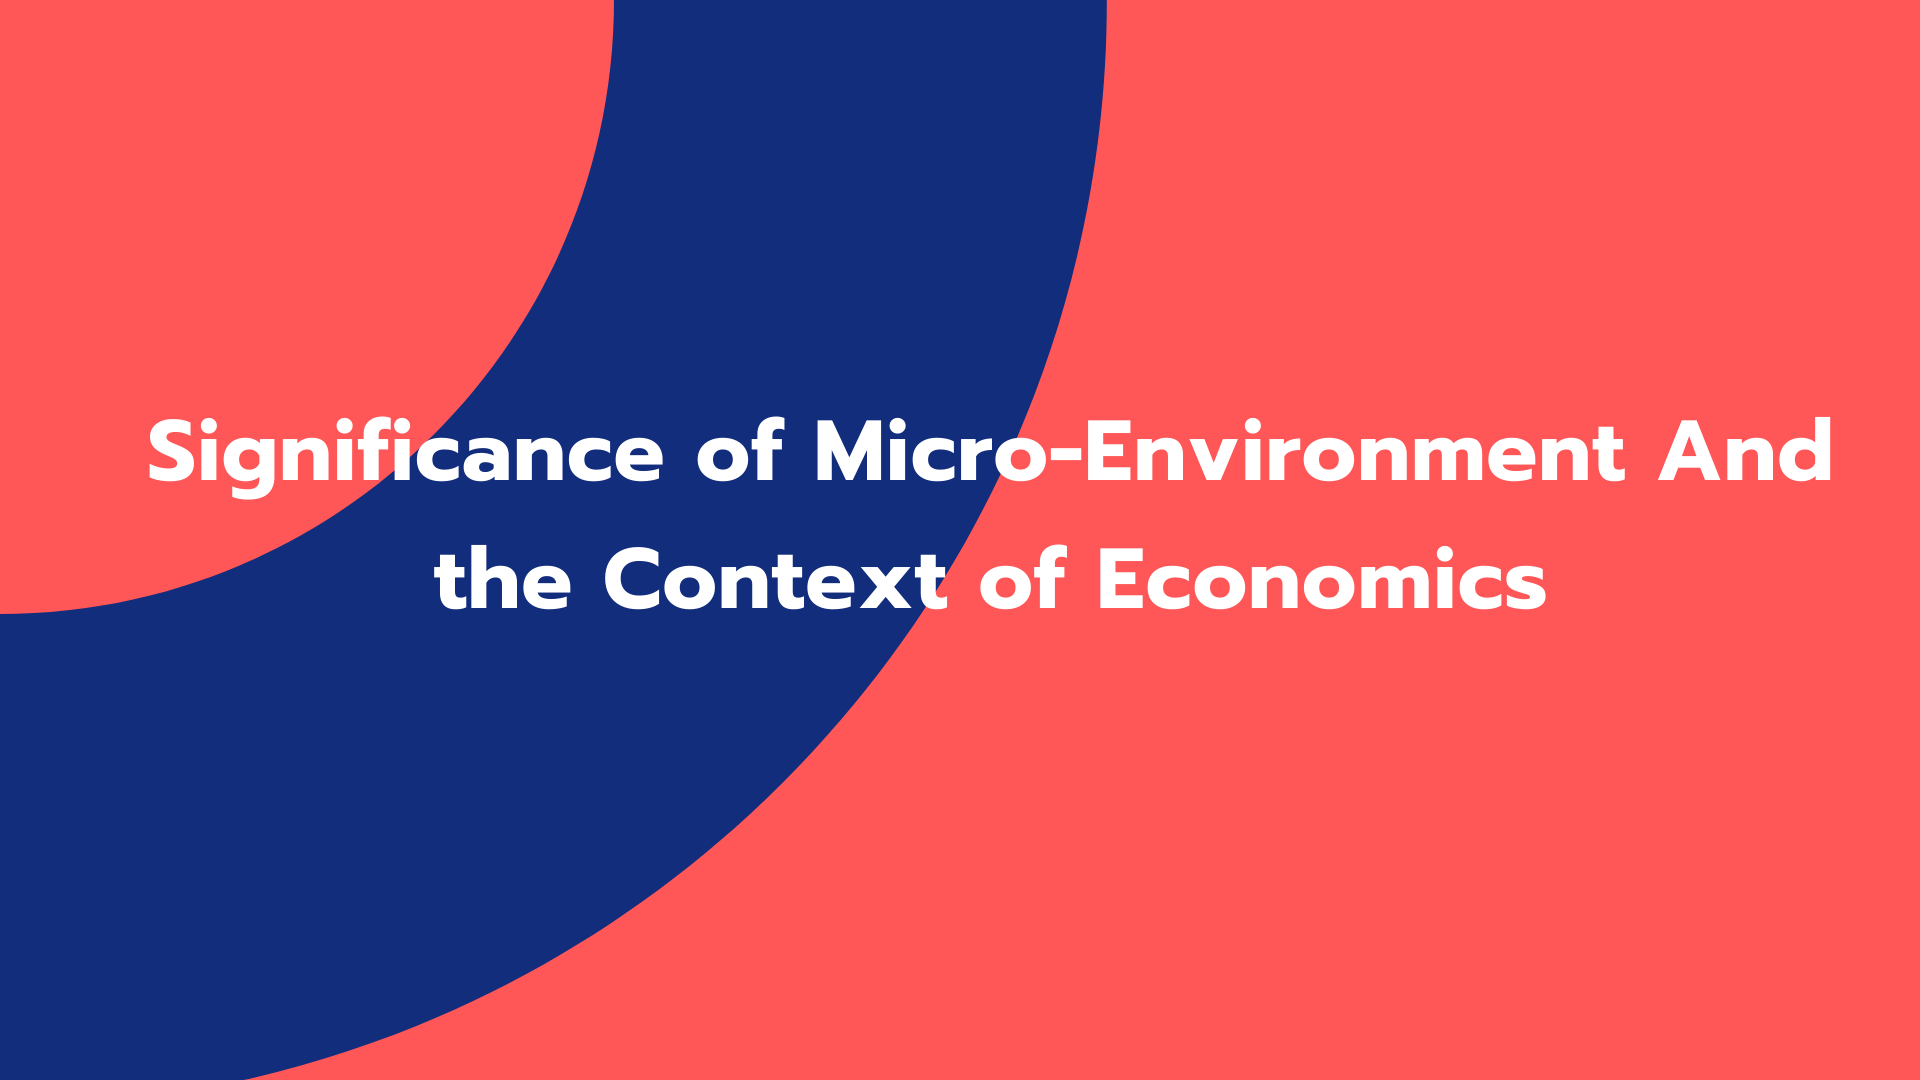 Significance of Micro-Environment And the Context of Economics